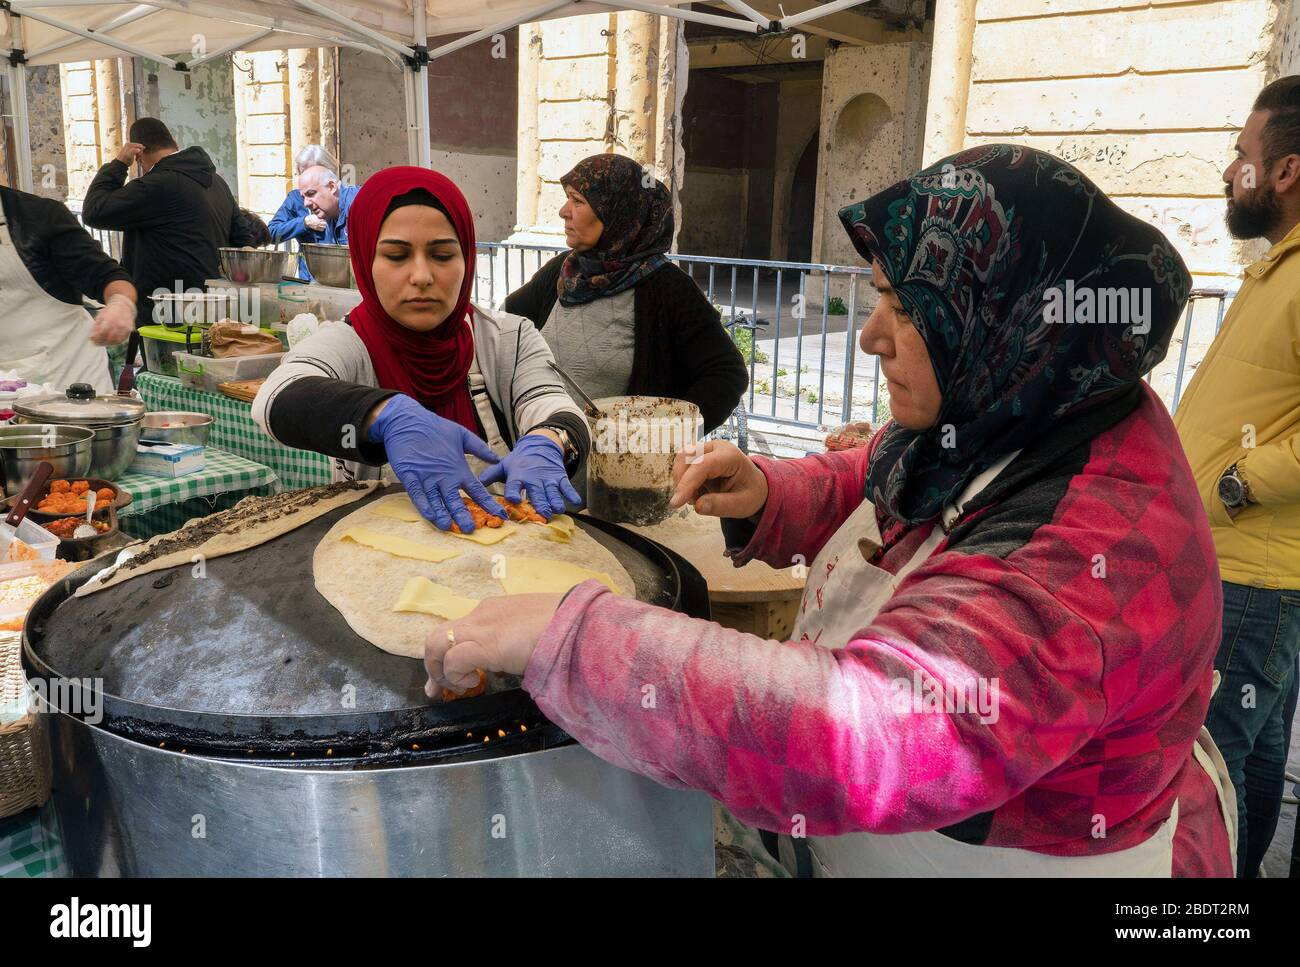 Women making saj bread in Farmers' Market at Beirut Souks Stock Photo